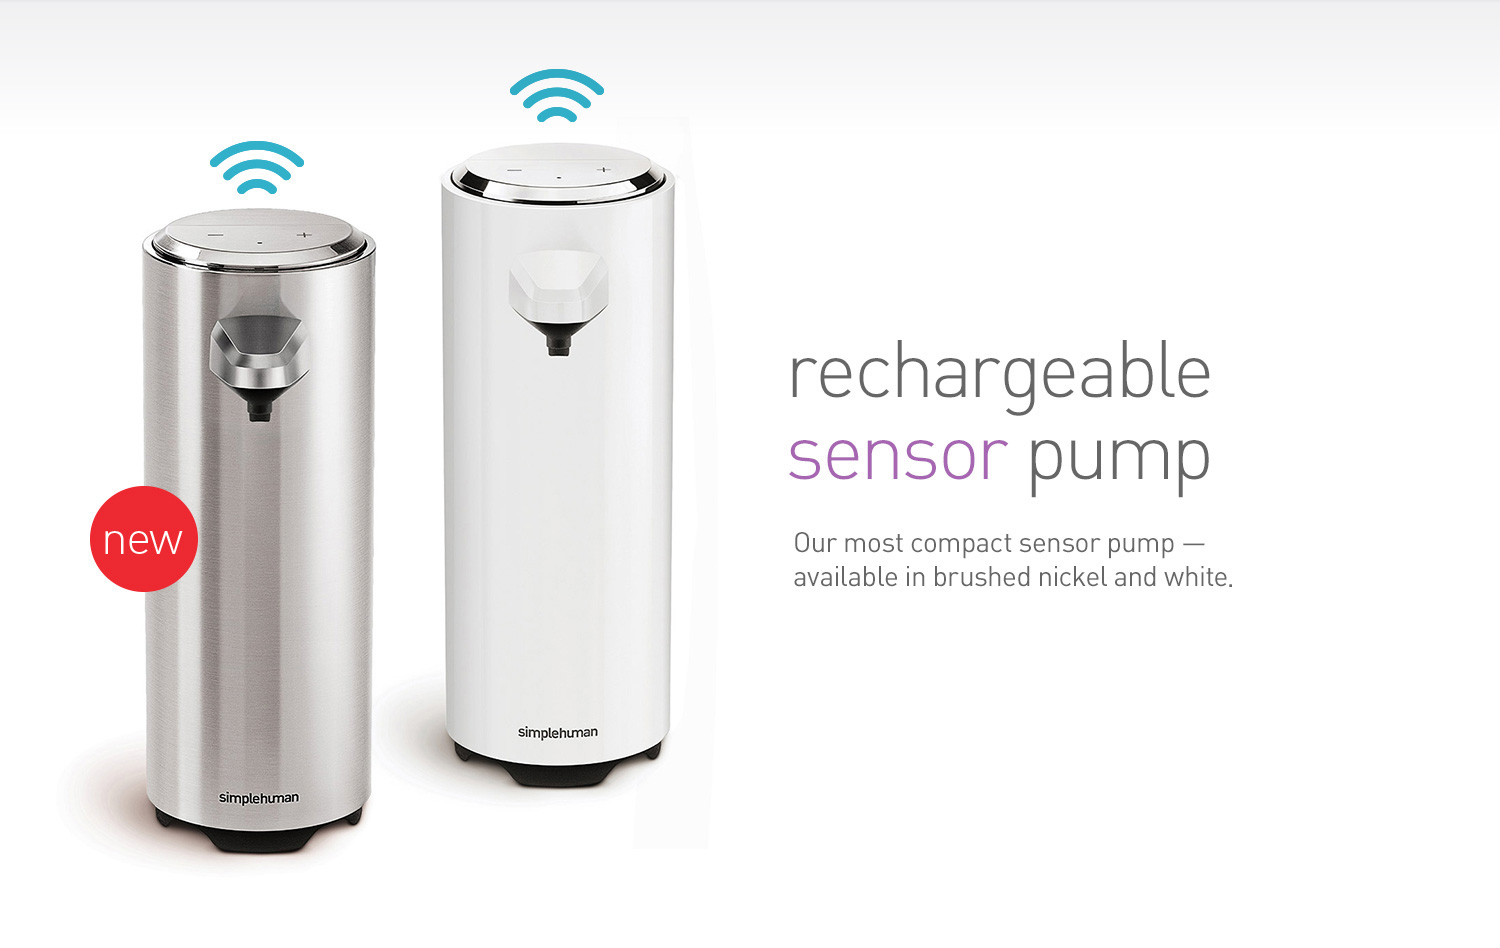 rechargeable sensor pump